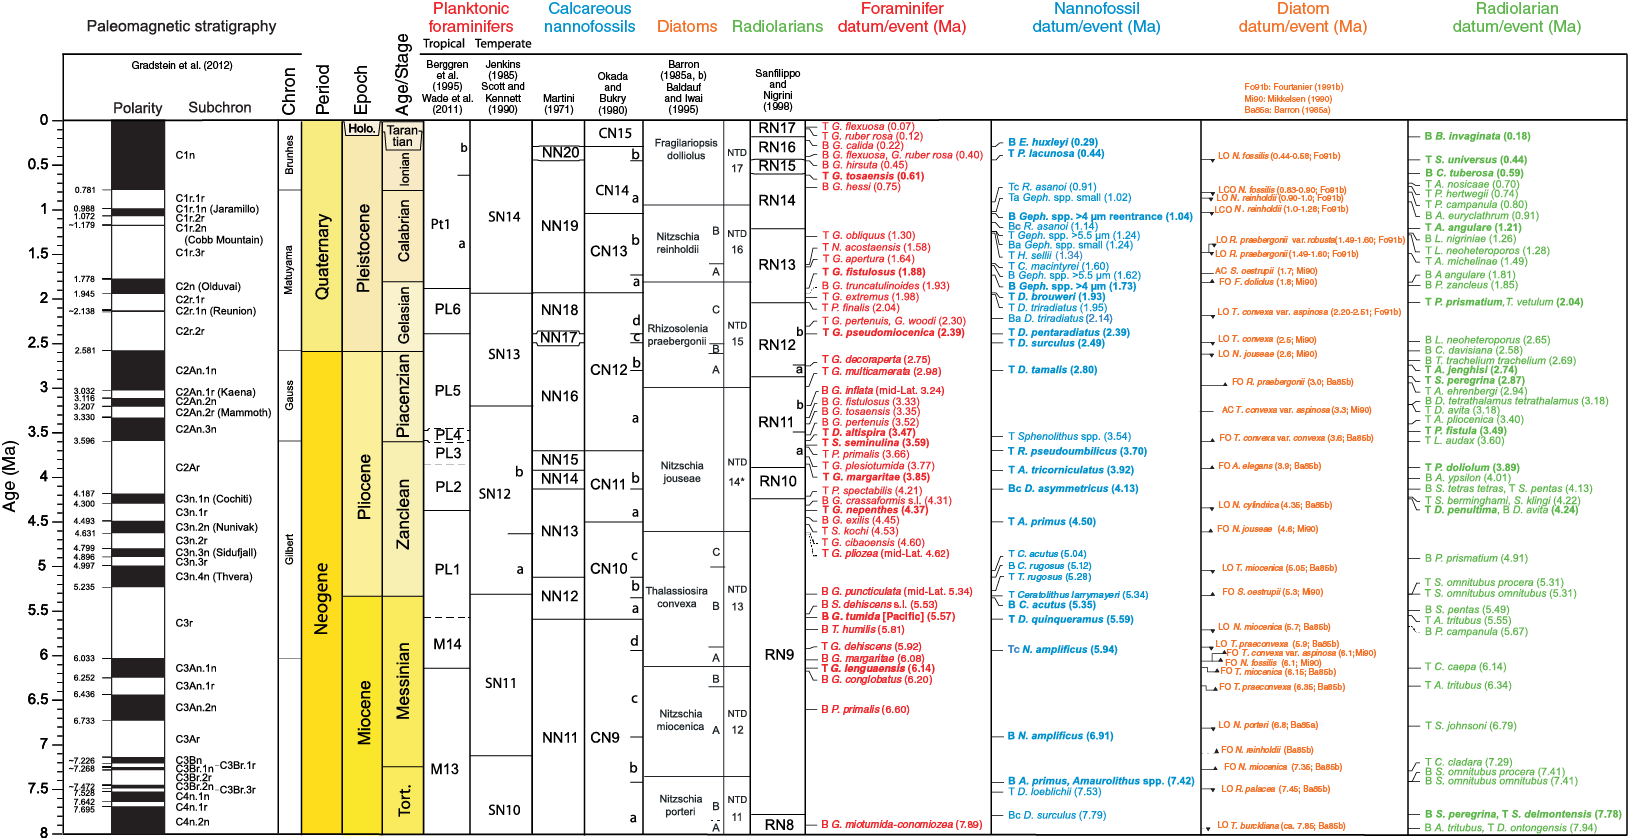 Iodp Publications Volume 361 Expedition Reports York Ac Schematics Df 072 Figure F6